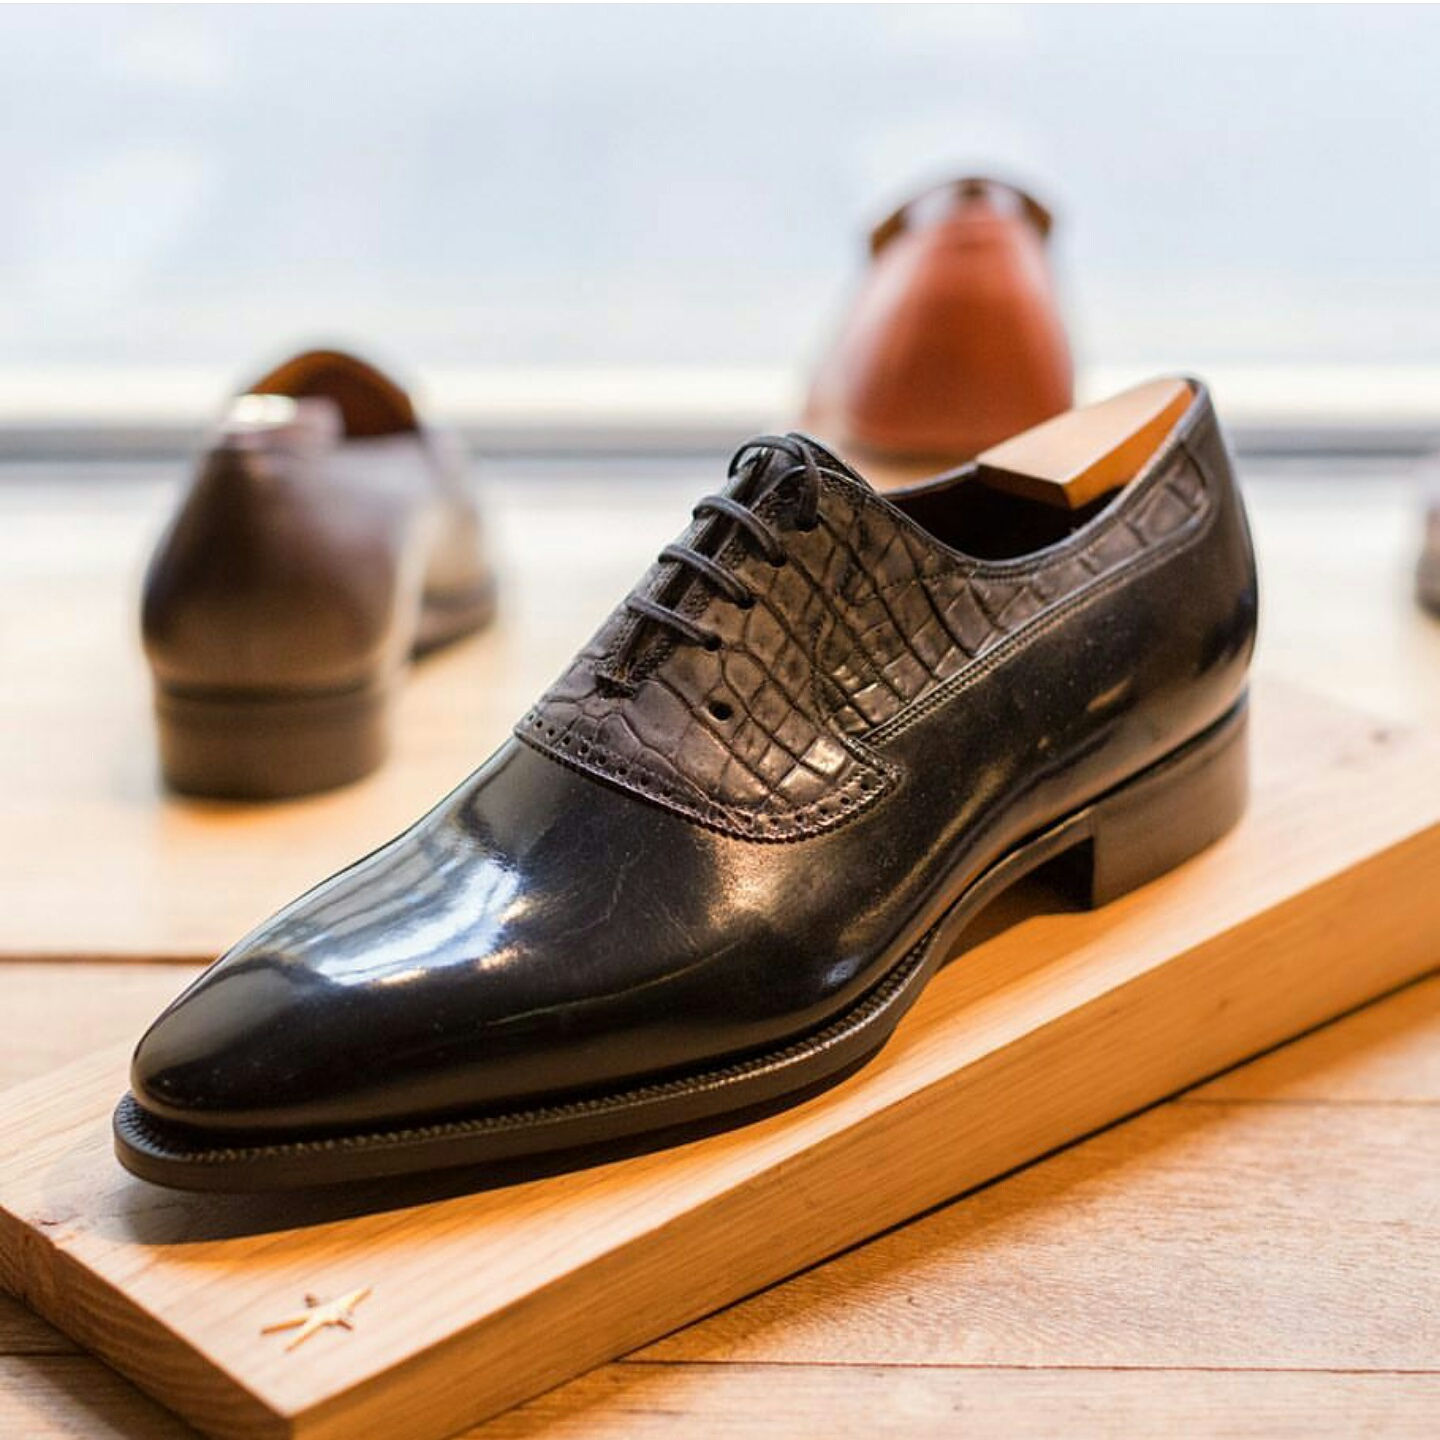 Corthay Shoes Review